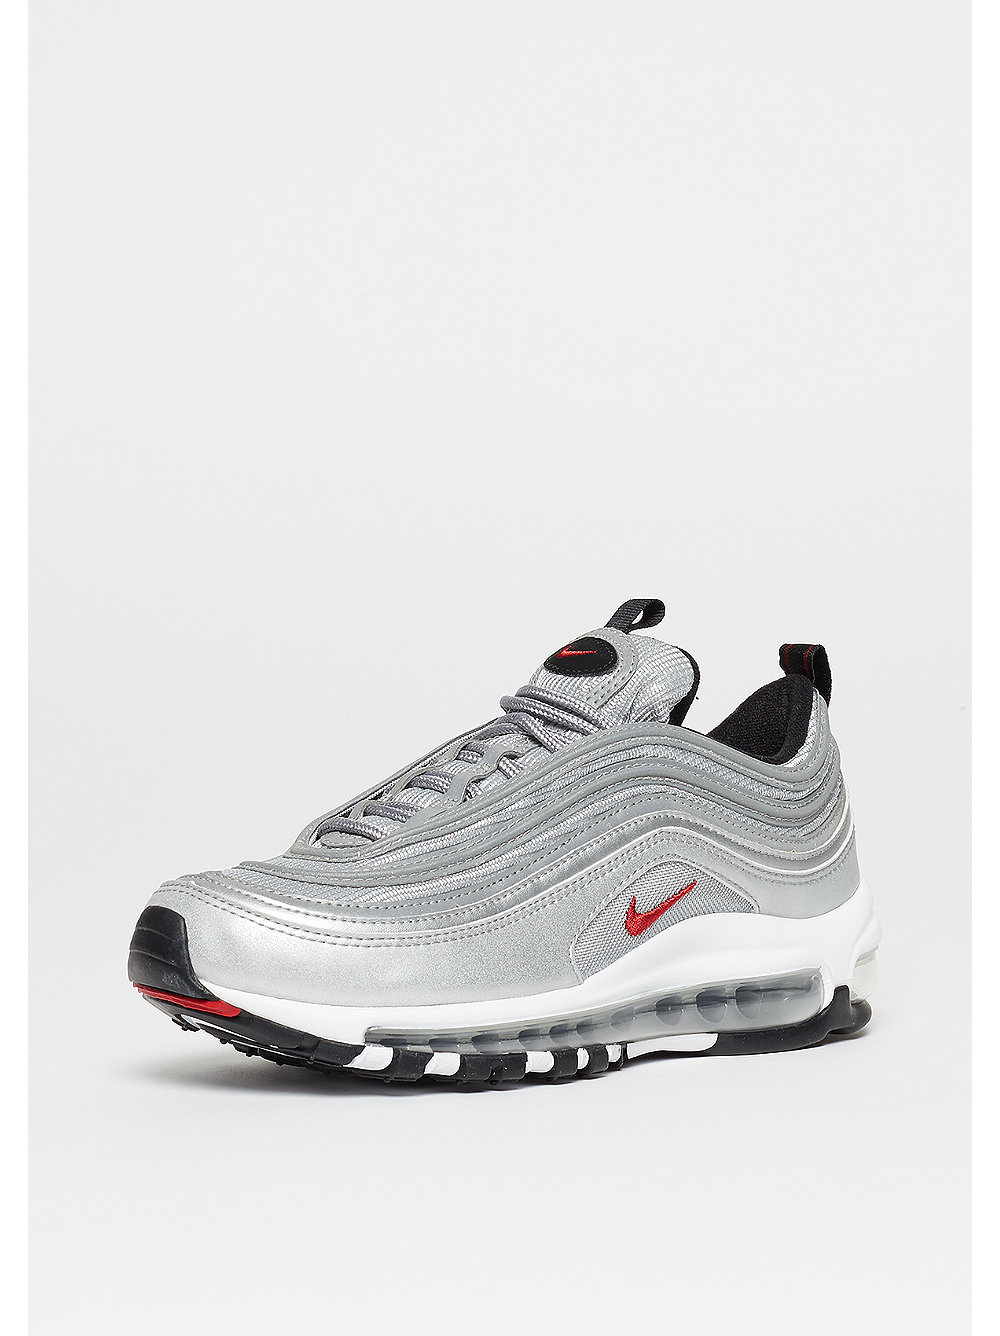 Silver Cheap Nike Air Max 97 Activate Learning Reading College